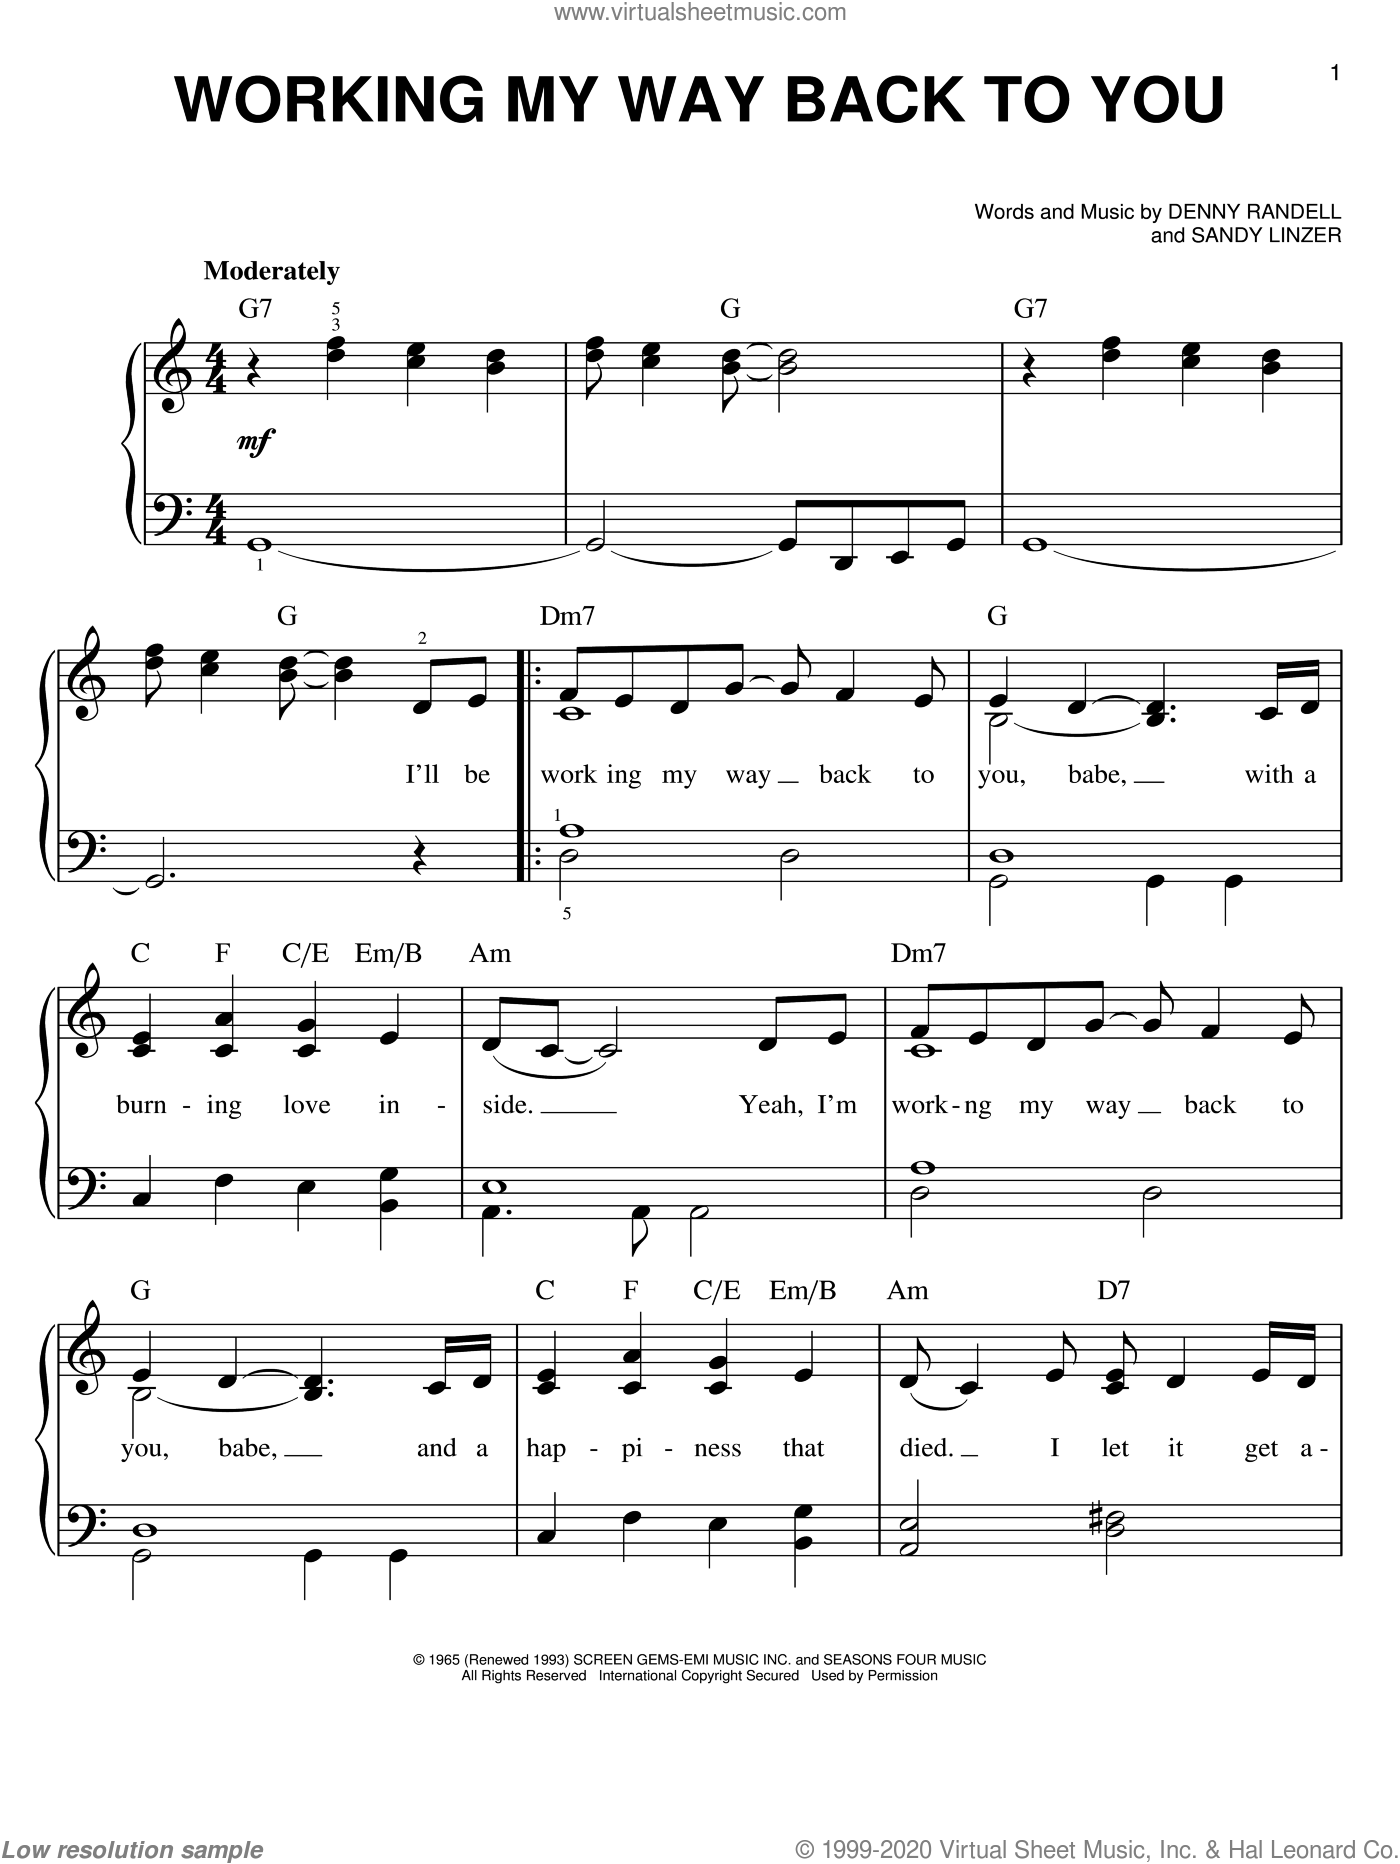 Working My Way Back To You sheet music for piano solo by The Four Seasons and Sandy Linzer, easy piano. Score Image Preview.